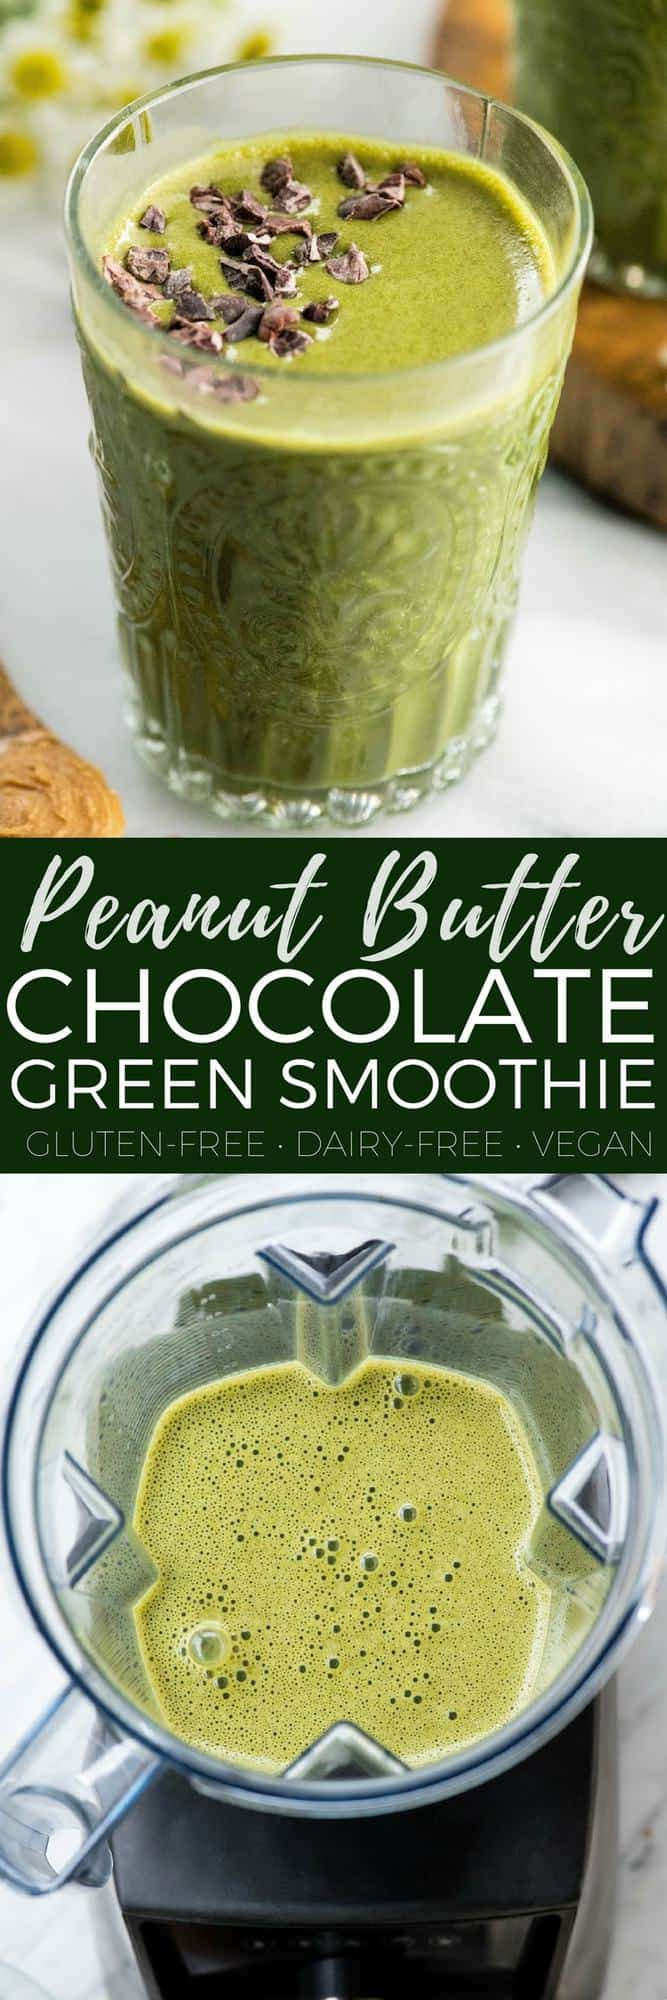 This Dairy-Free Chocolate Peanut Butter Smoothie with Spinach is a nutritional powerhouse that tastes like a liquid peanut butter cup! It's the perfect breakfast recipe and a great way to start any day! #greensmoothie #dairyfree #vegan #glutenfree #proteinpowder #chocolate #peanutbutter